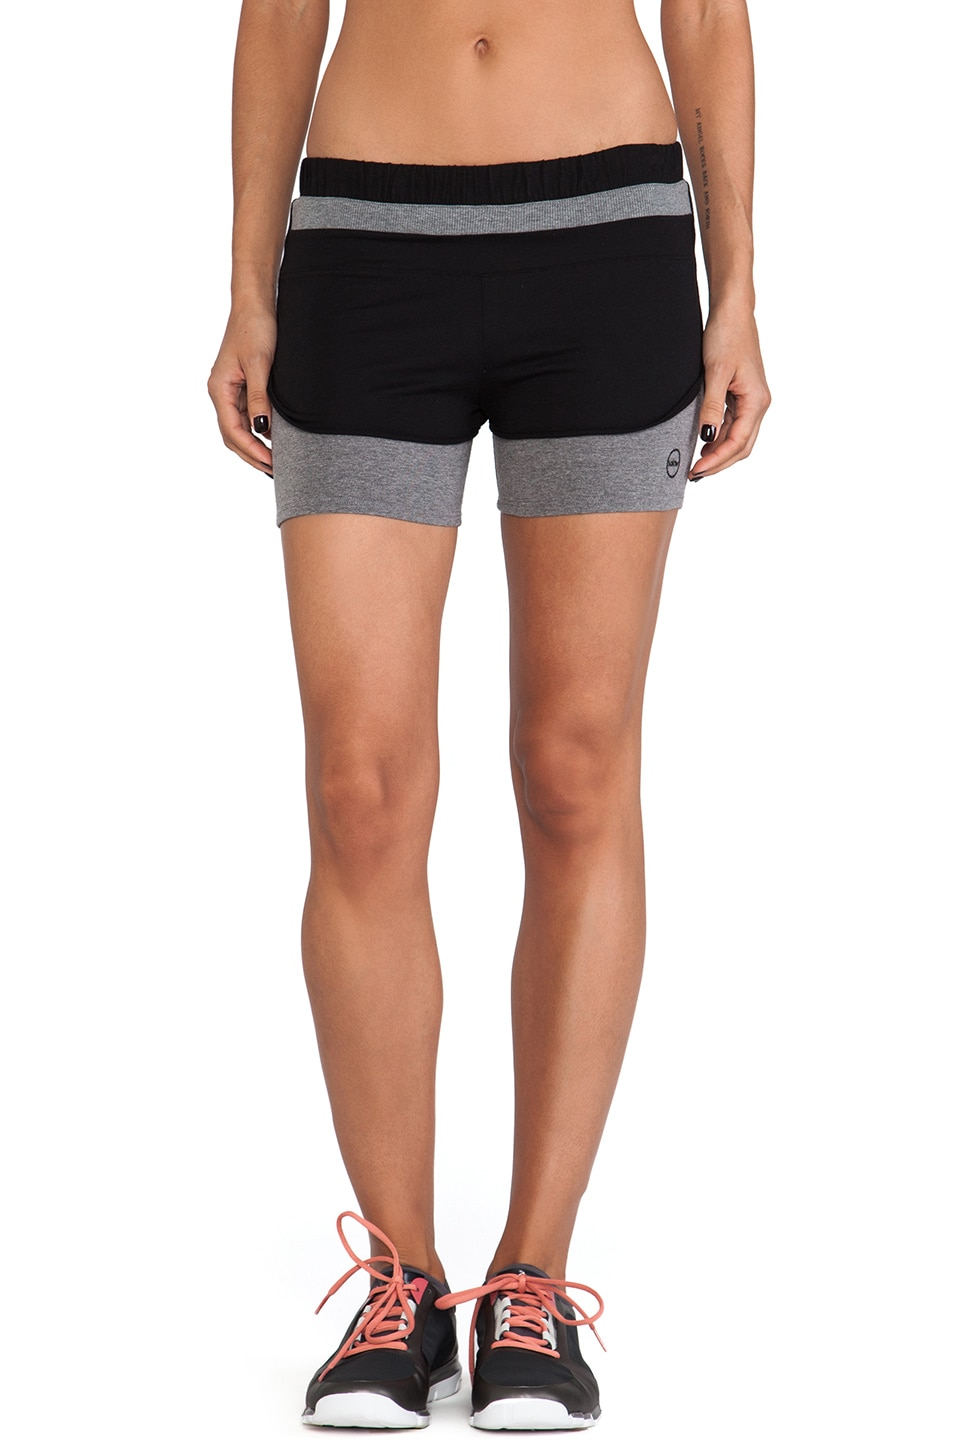 SOLOW Colorblock Running Short in Black & Medium Heather Grey